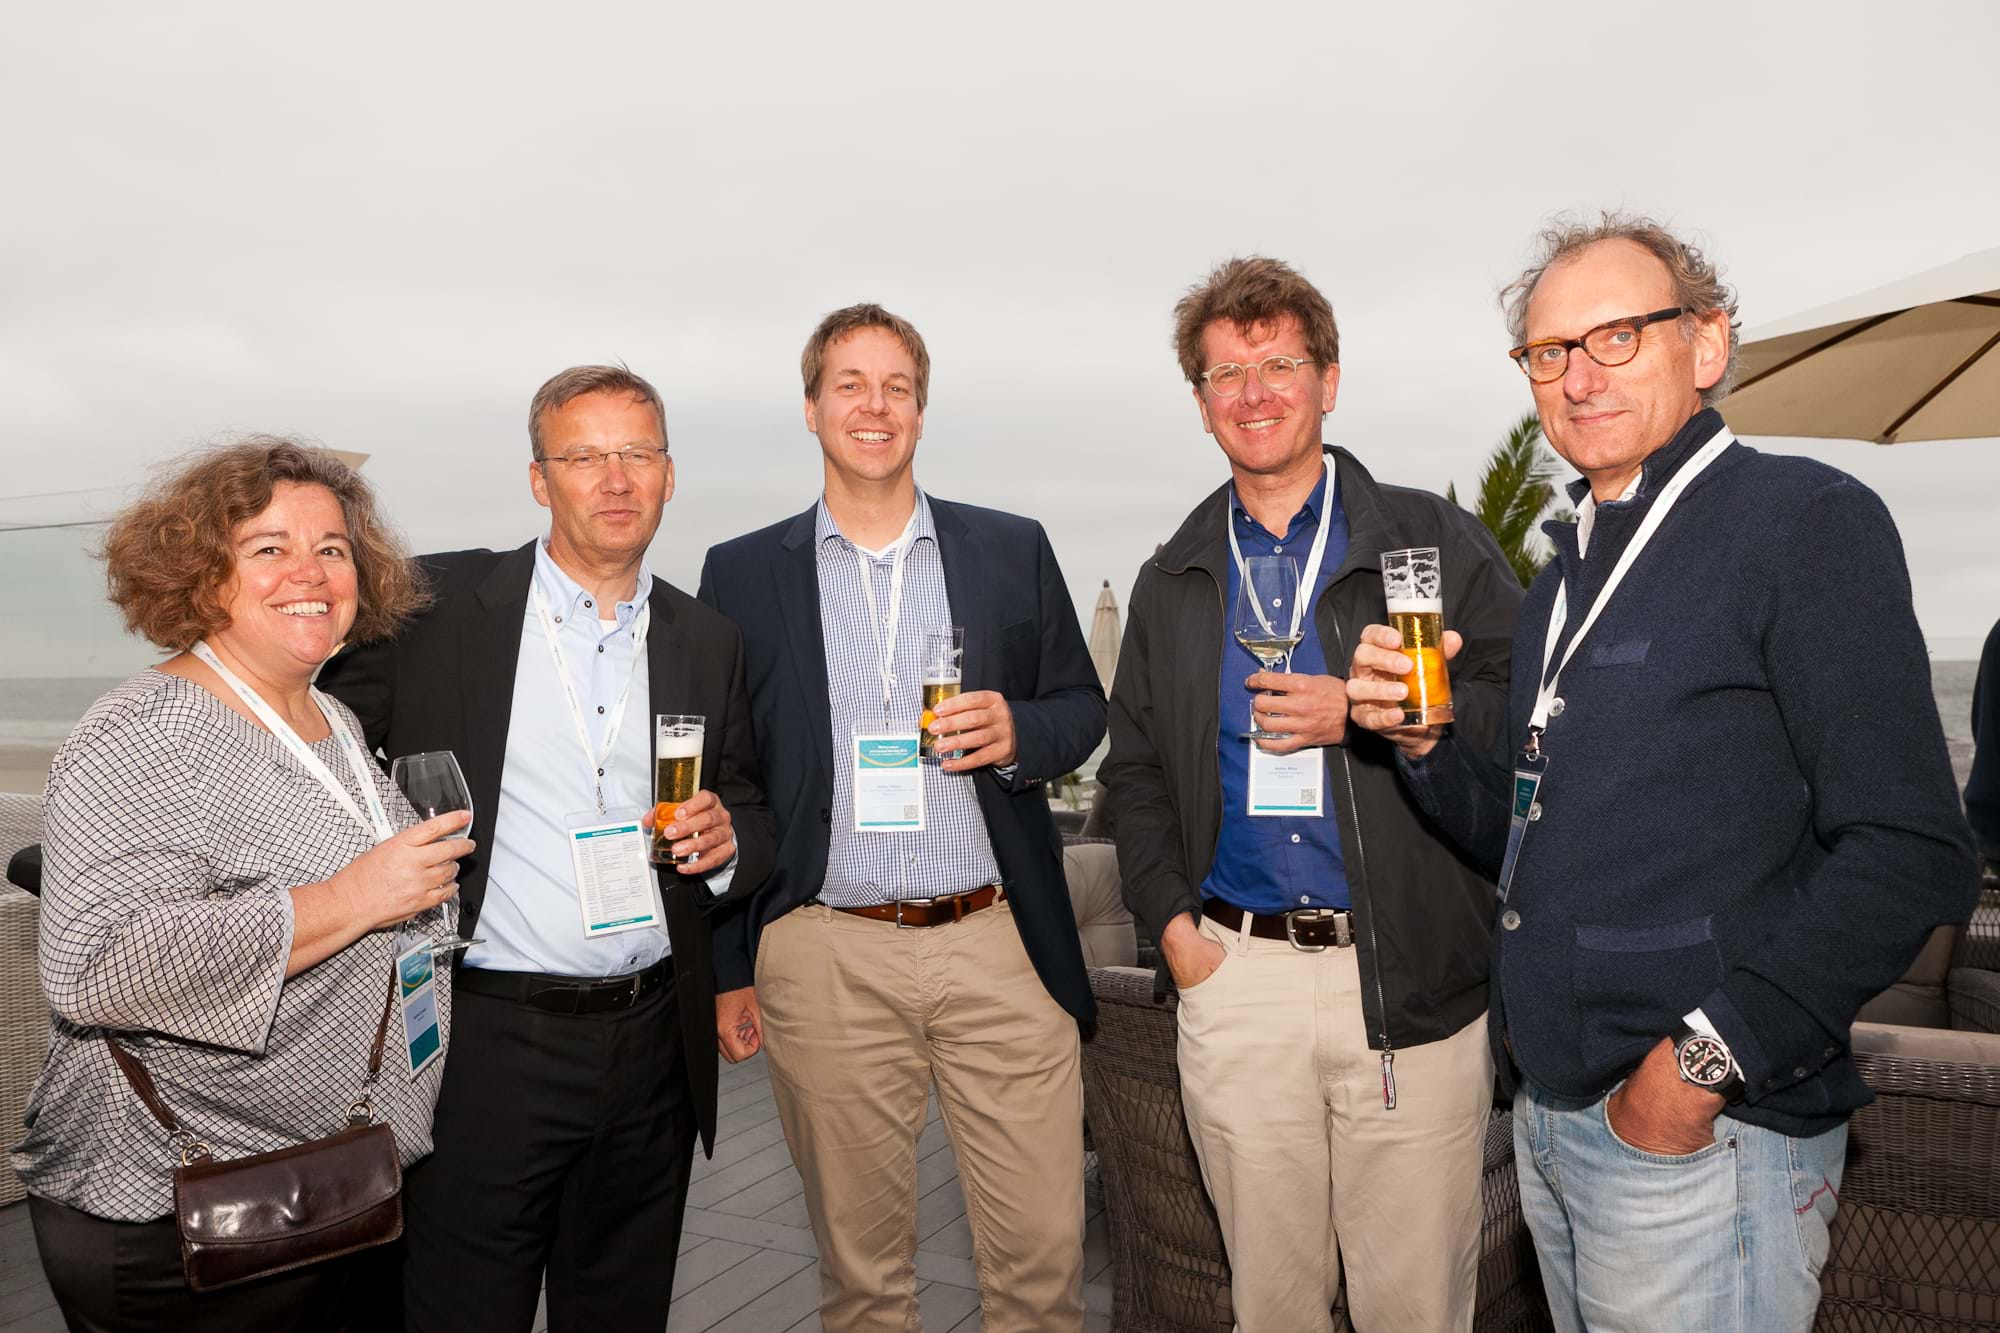 MGI World Delegates at beachside welcome drinks 9 MGI European Area Meeting, the Netherlands 2016